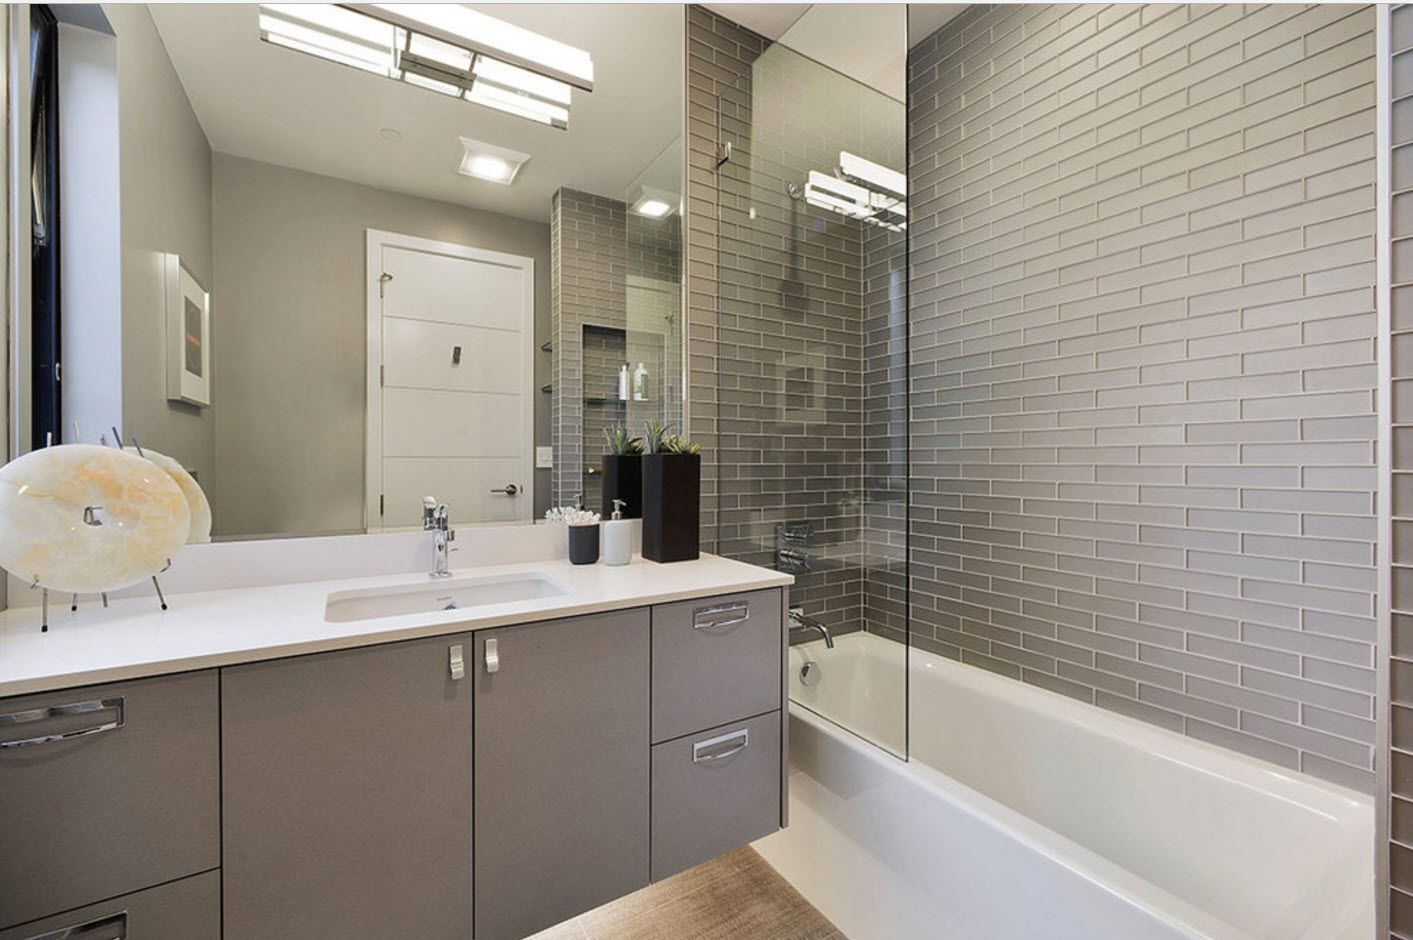 Spectacular modern set in the cottage's bathroom in grey tones and mosaic tile